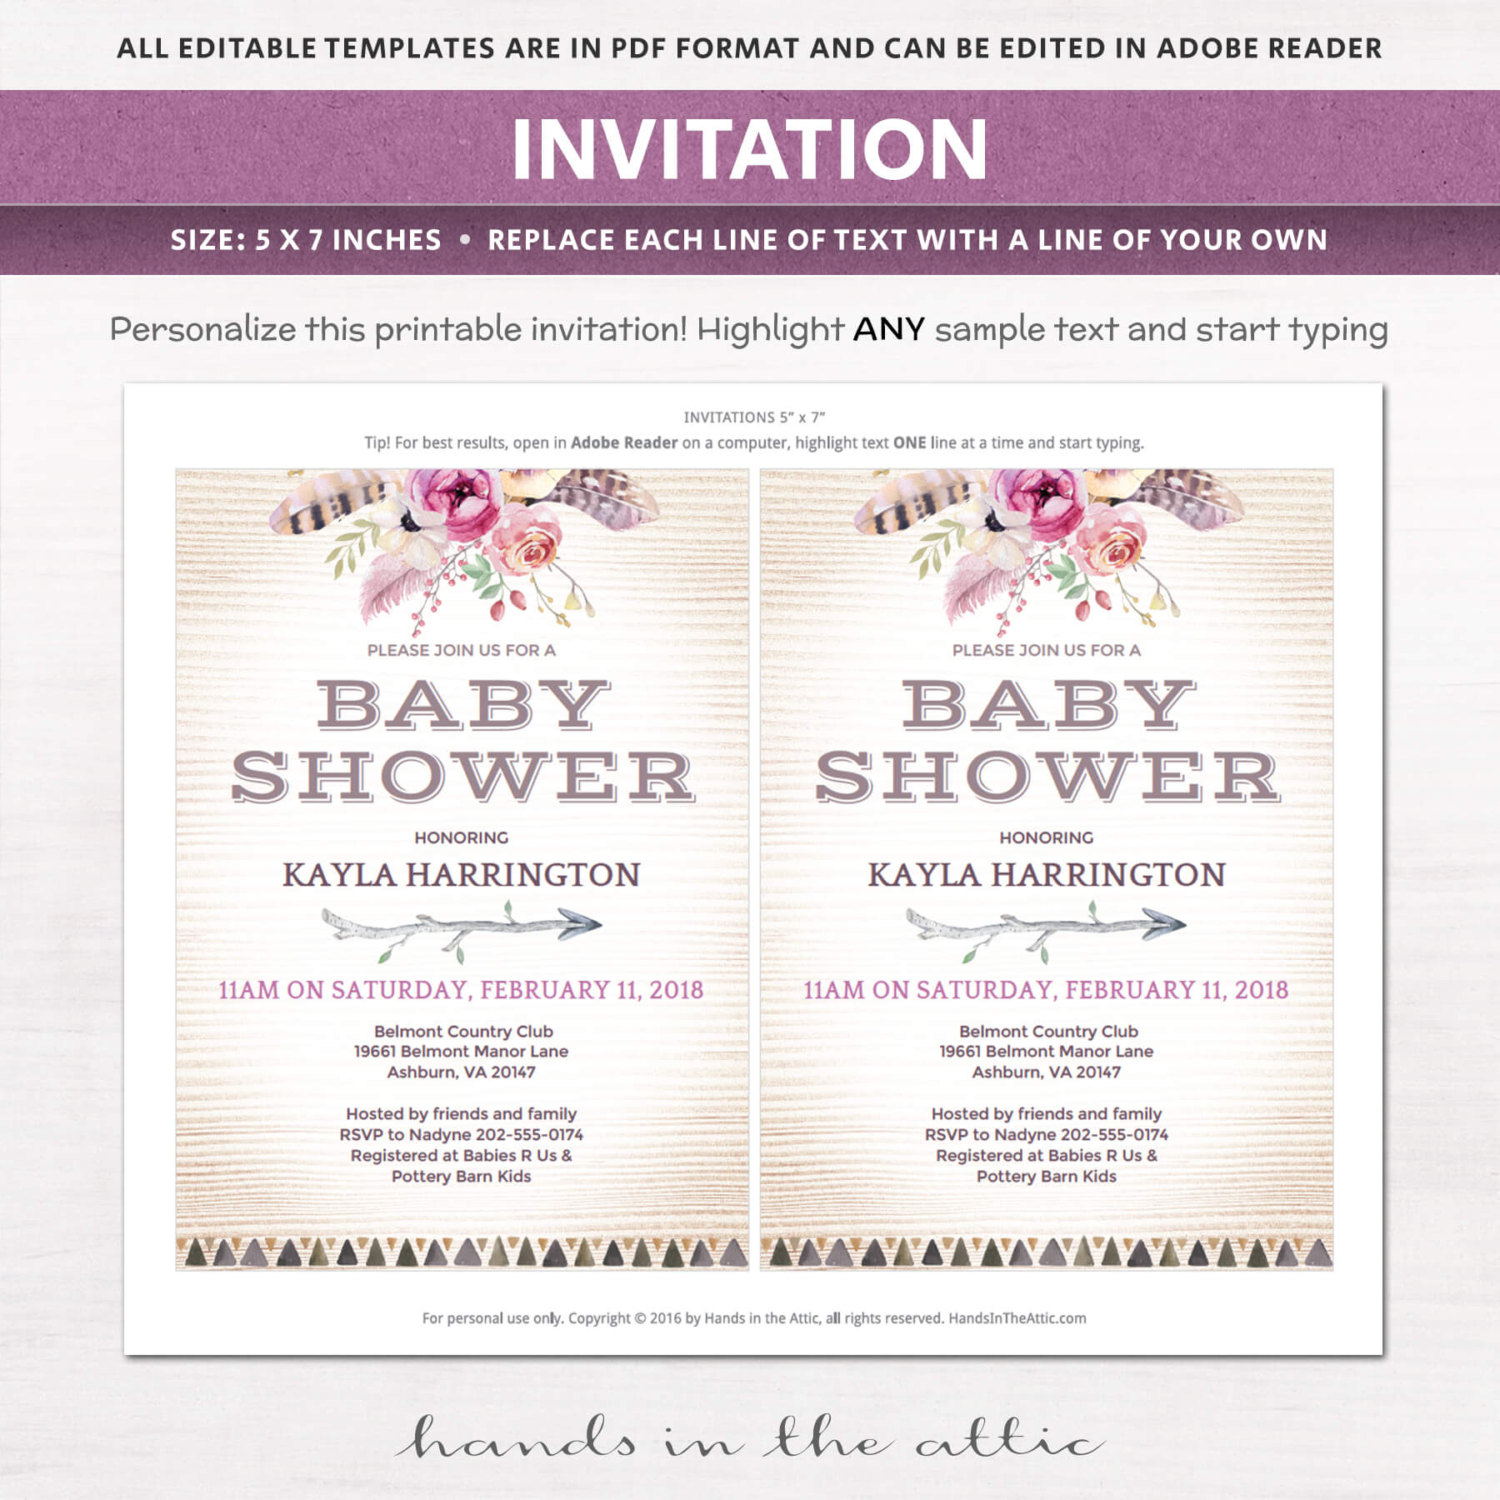 boho baby shower invitation kit printable stationery weddings parties celebrations. Black Bedroom Furniture Sets. Home Design Ideas